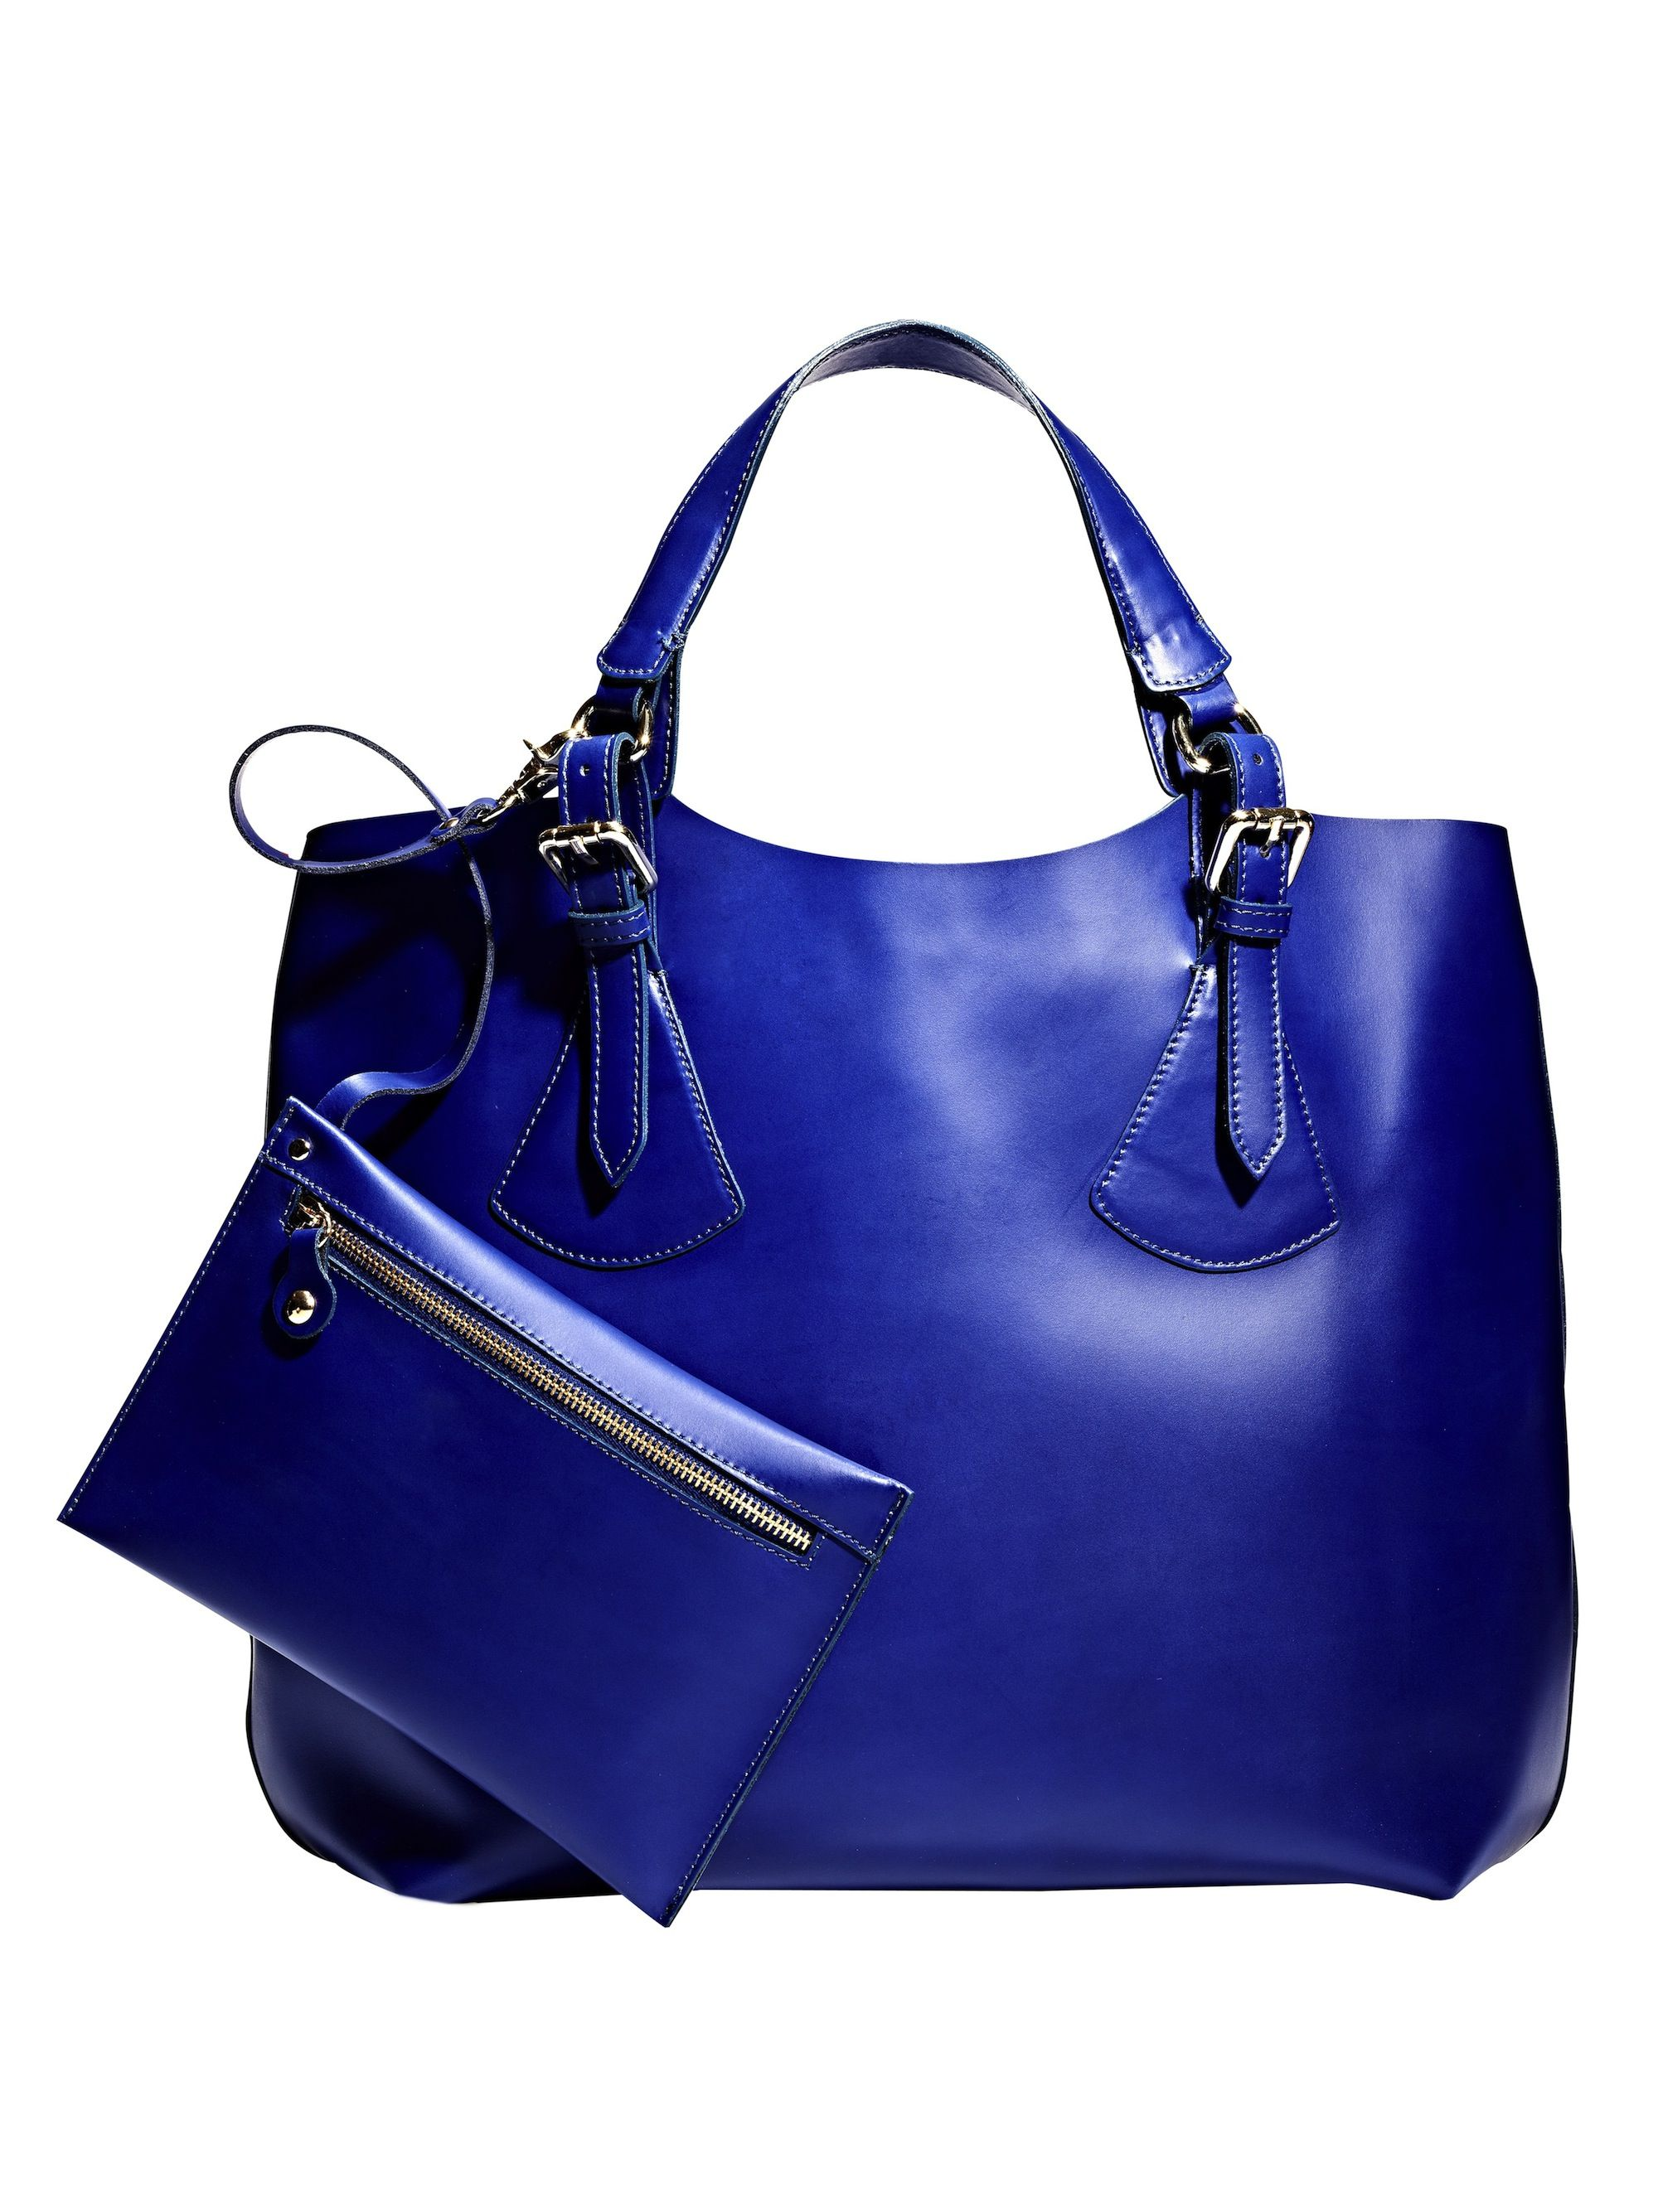 This royal blue handbag from @Marshalls is sure to make a ...